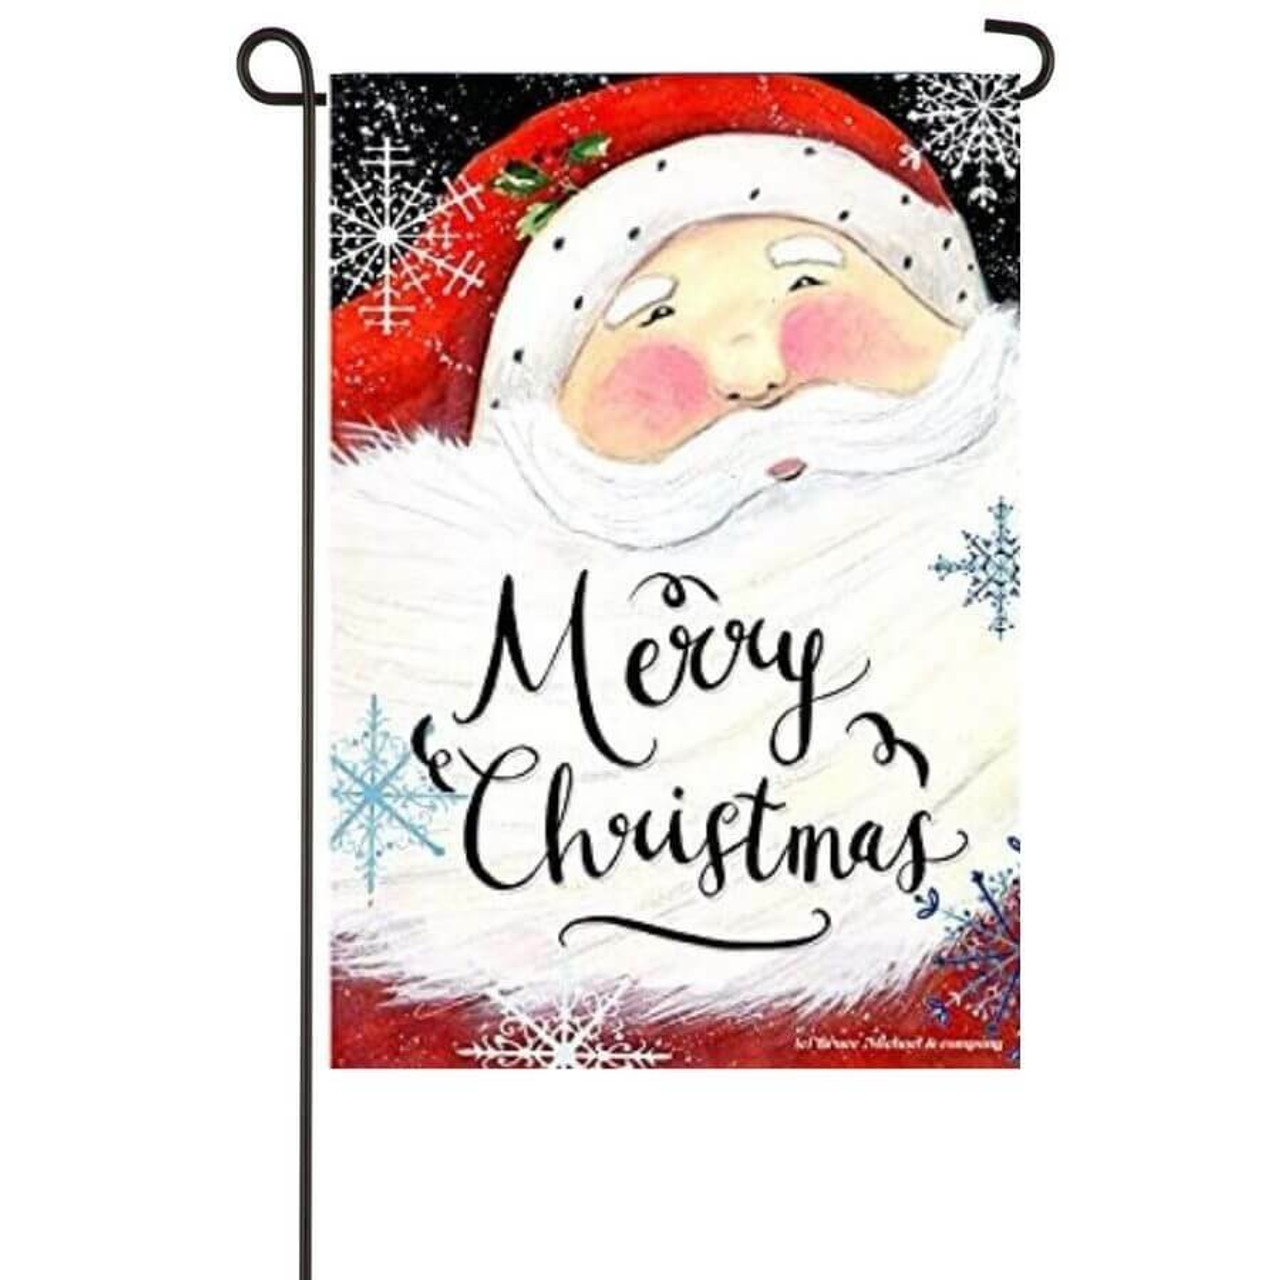 """A garden flag with artwork of Santa's face and """"Merry Christmas"""" written in his beard. Snowflakes are scattered around him."""